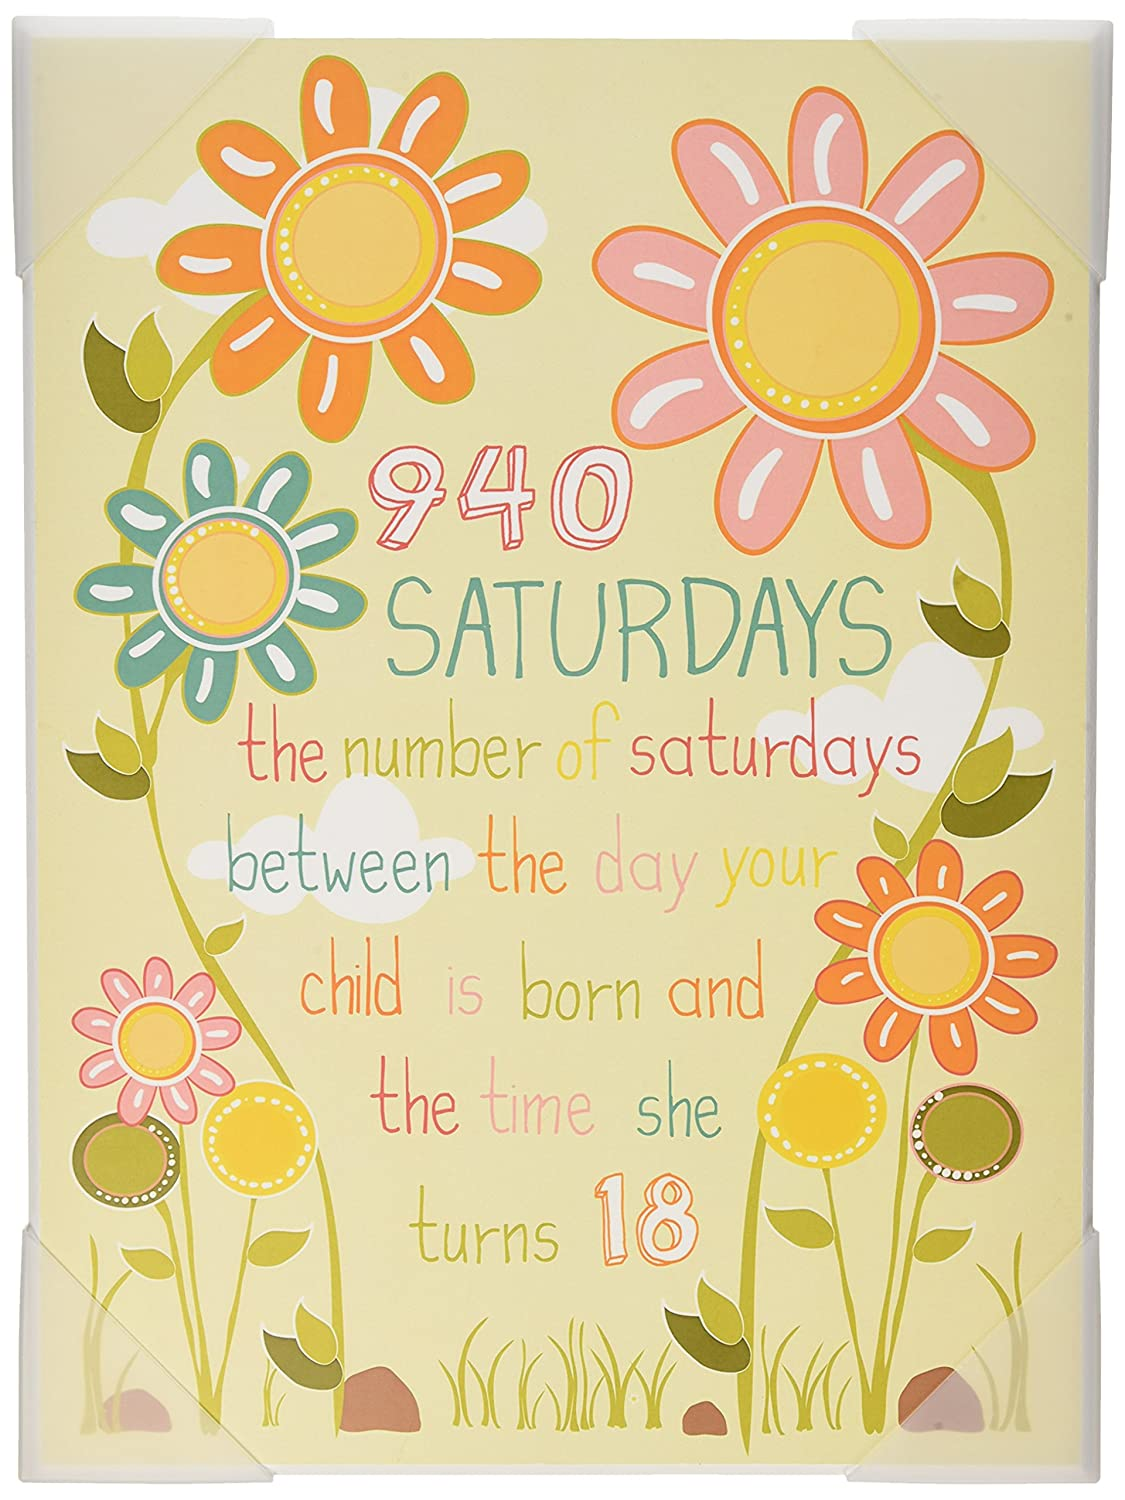 The Kids Room by Stupell Floral Graphic Art Wall Plaque, 940 Saturdays, 11 x 0.5 x 15, Proudly Made in USA Stupell Industries brp-1689